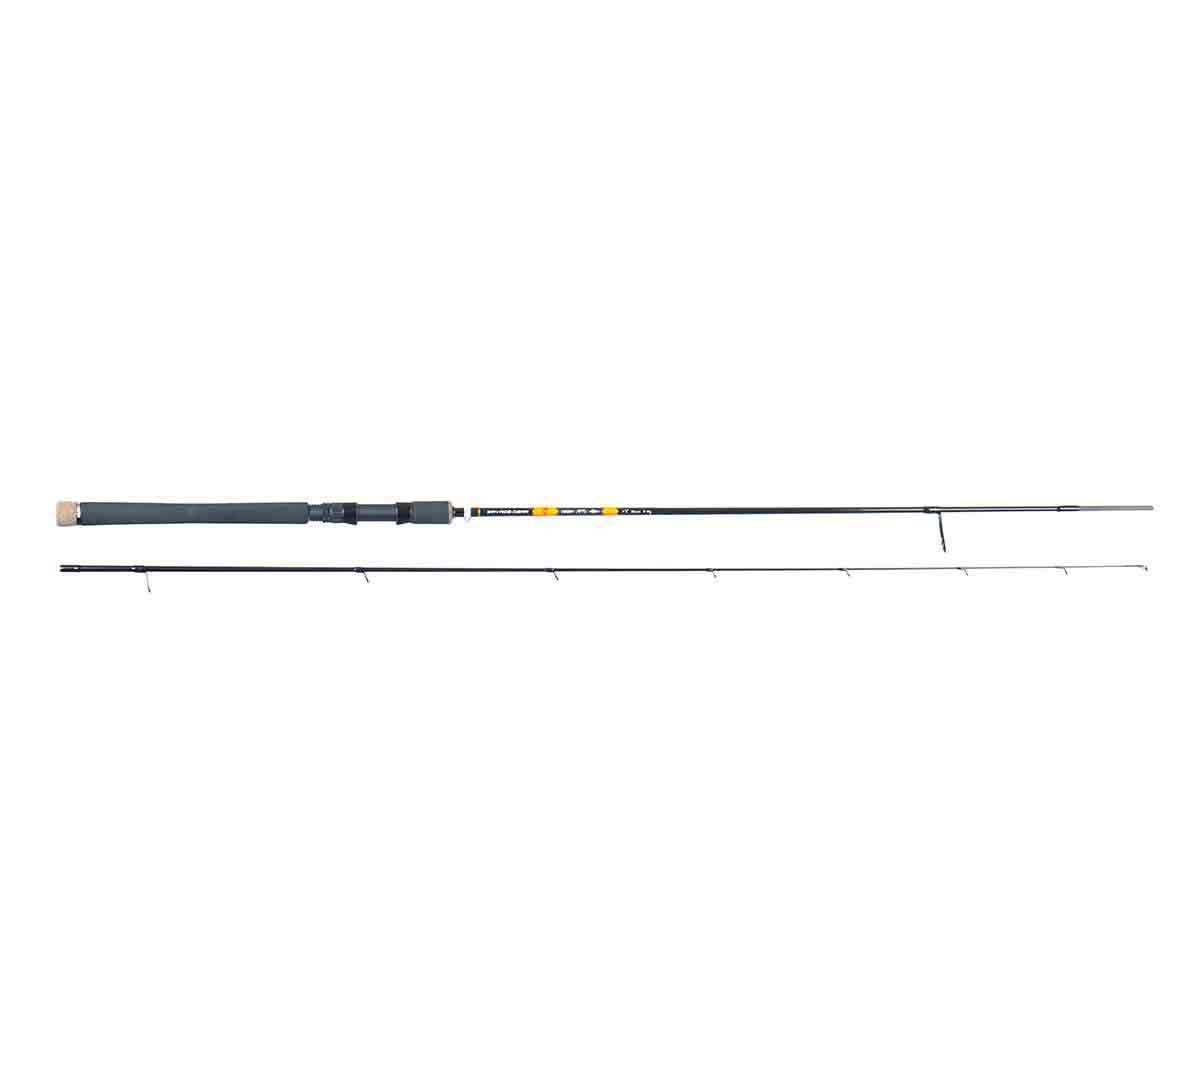 Savage Gear MPP2 Spin Rod 9ft 5-20g Multi Purpose Purpose Purpose PROTator 2 Lure Rod f59ec3